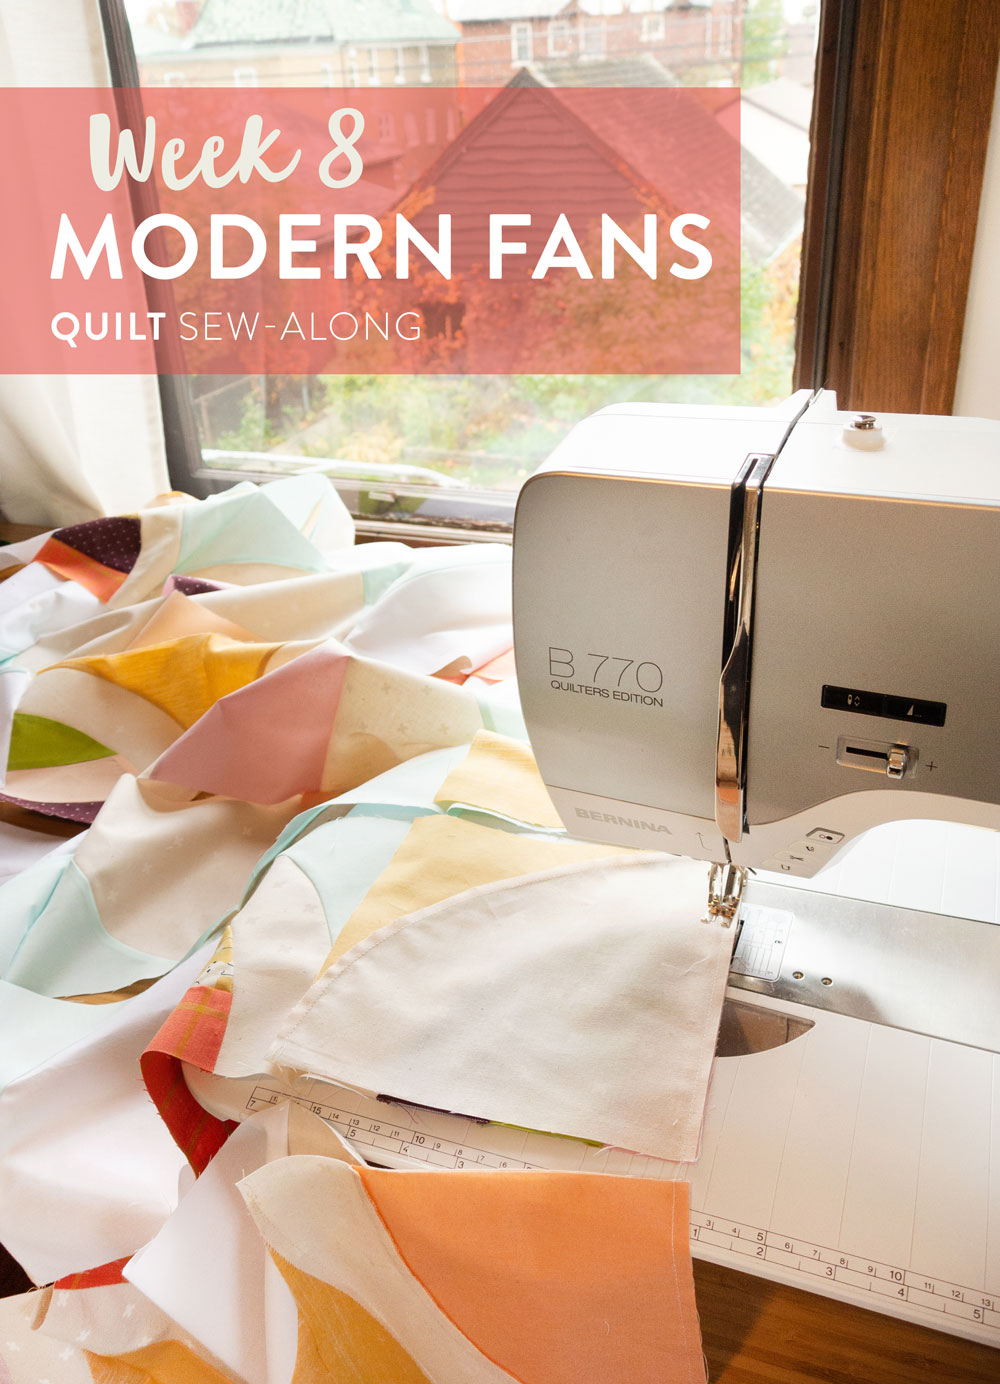 Join the Modern Fans quilt pattern sew-along for a chance to win a BERNINA 350 sewing machine along with other amazing prizes! Included are lots of video tutorials and support to help you learn to sew curves. This week we are chain piecing rows. Check out the video tutorial!